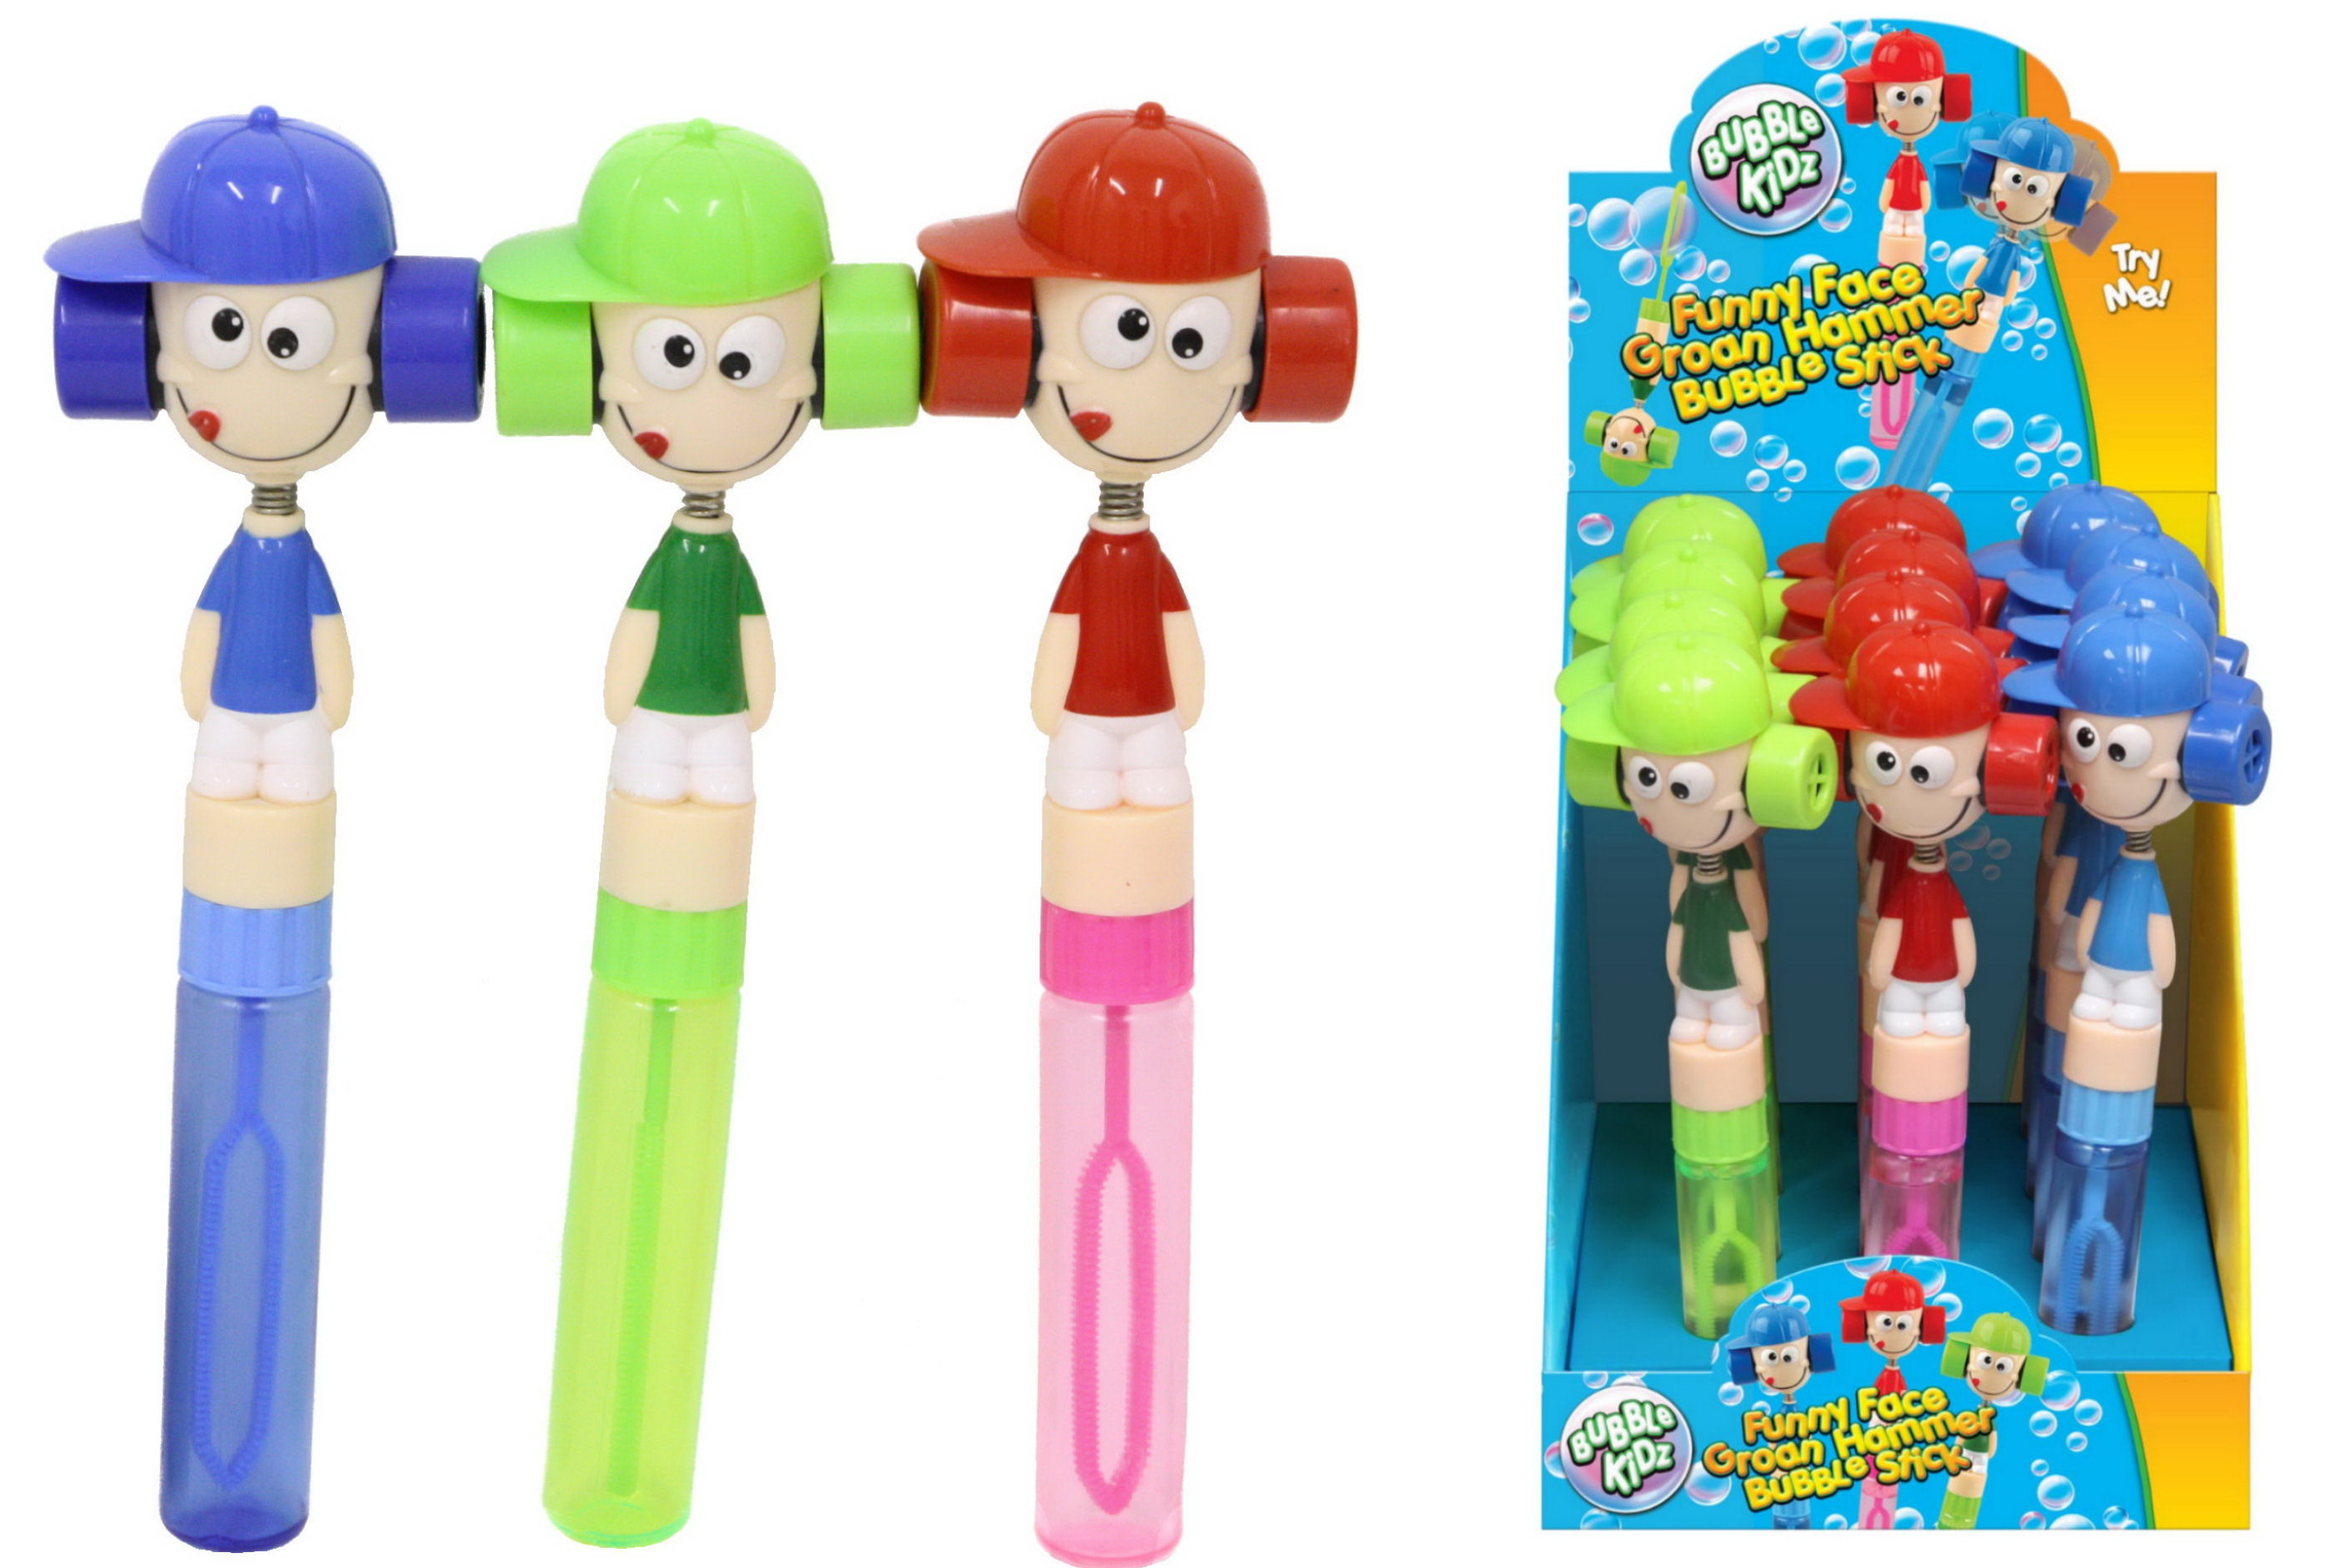 Funny Face Groan Hammer Bubble Stick In Pdq 3 Asst Cols